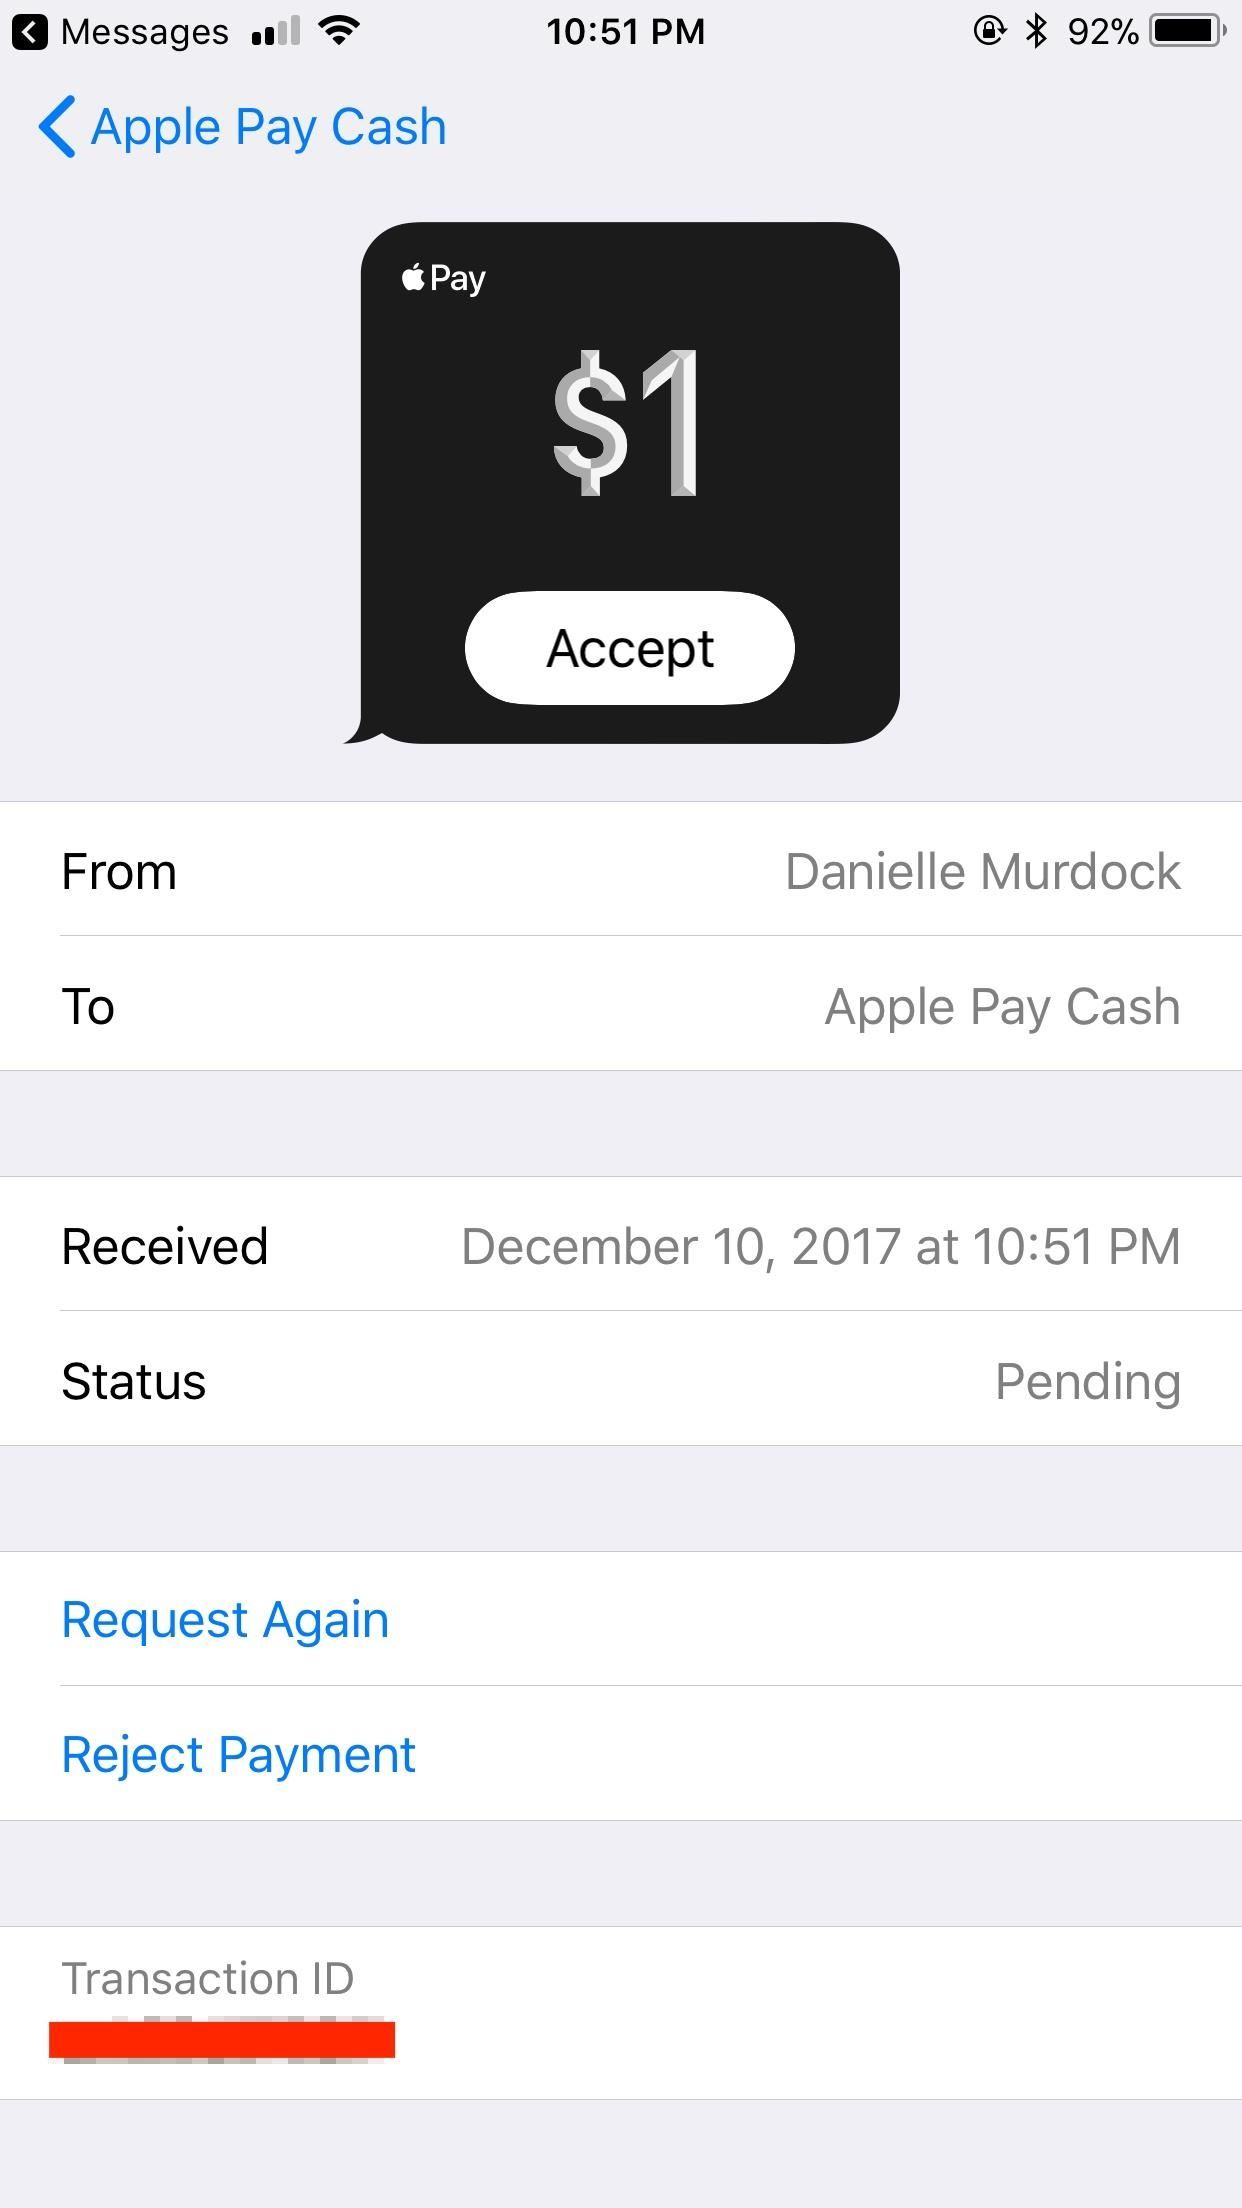 Apple Pay Cash 101: How to Request Money from Friends & Family via iMessage